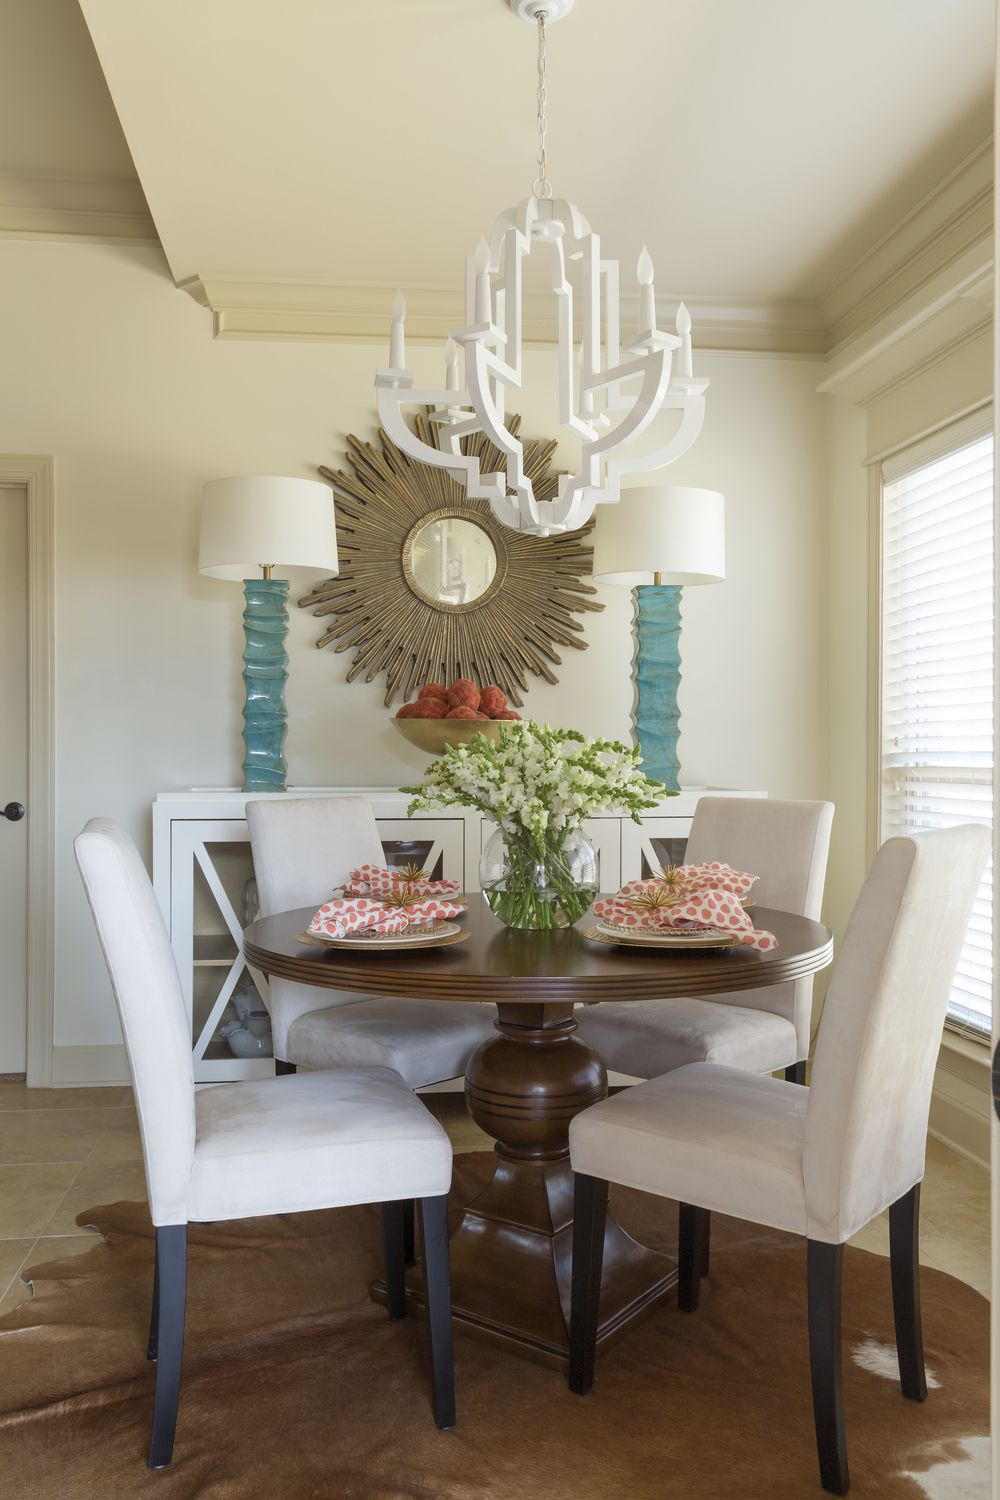 Katie Grace Designs Contemporary Dining RoomsBreakfast